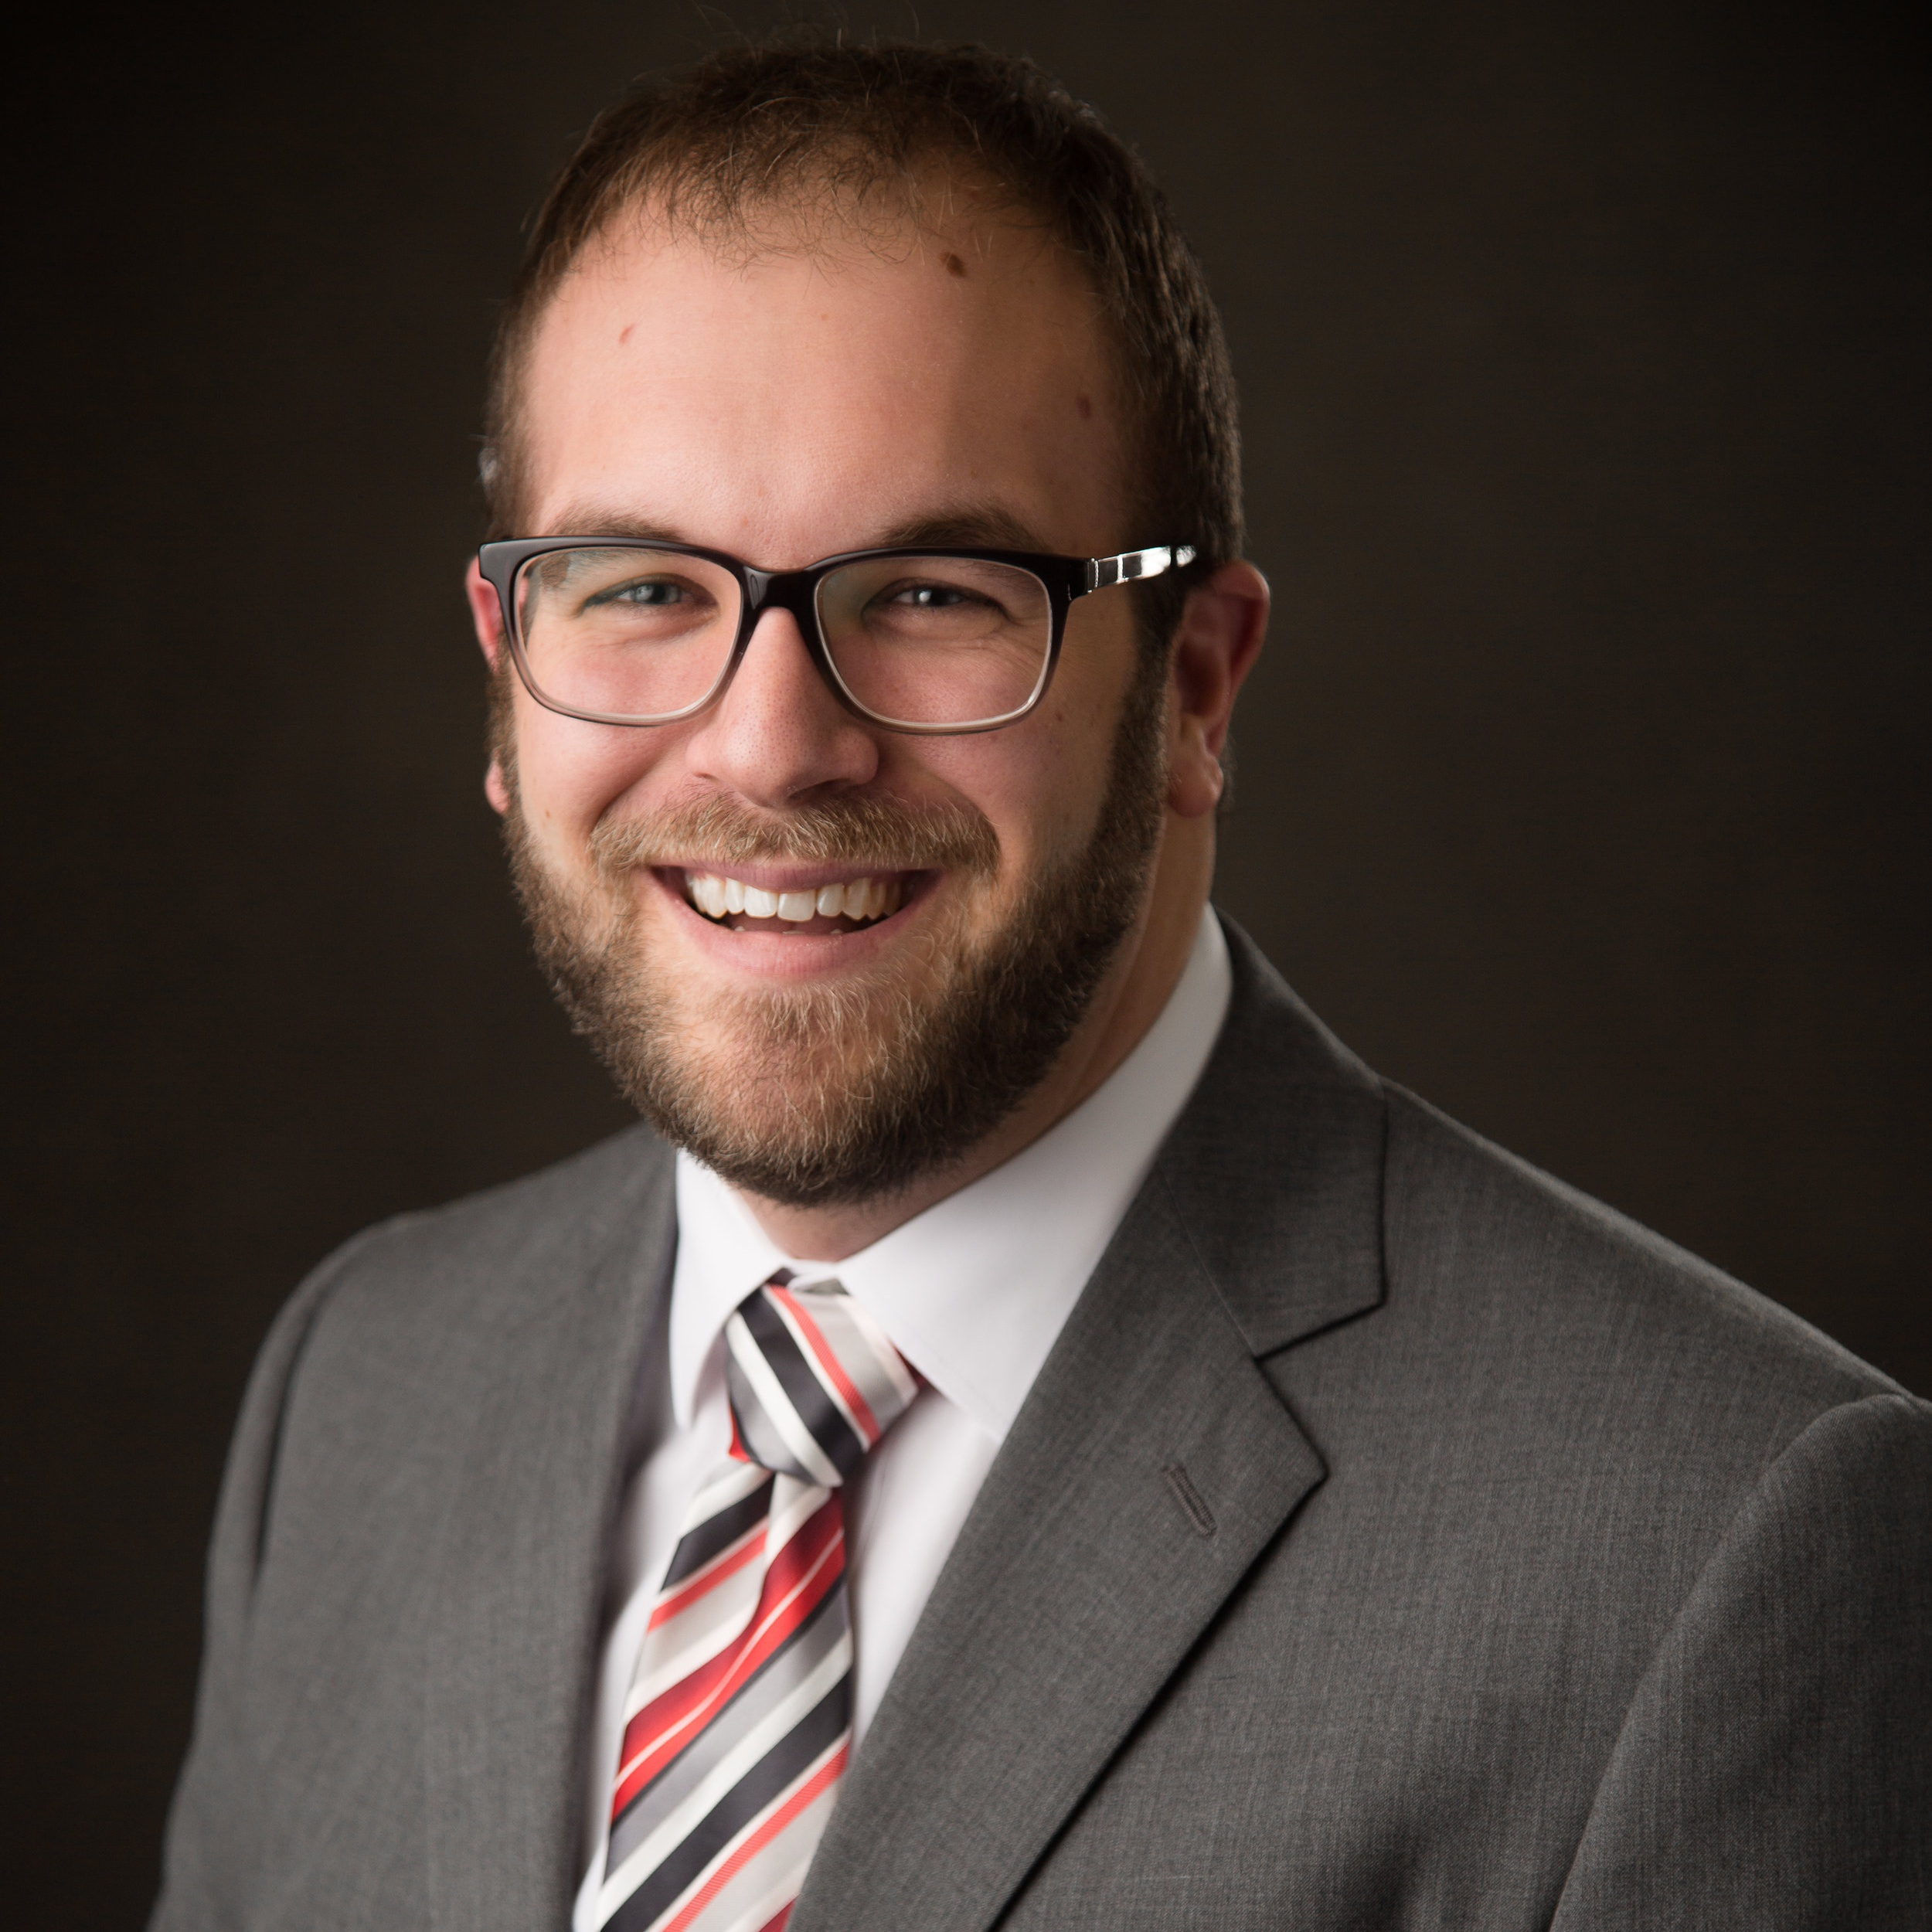 Jason Pyles - Jason is the GIS Coordinator for Buckeye Hills Regional Council and has been in his current position since March 2012.